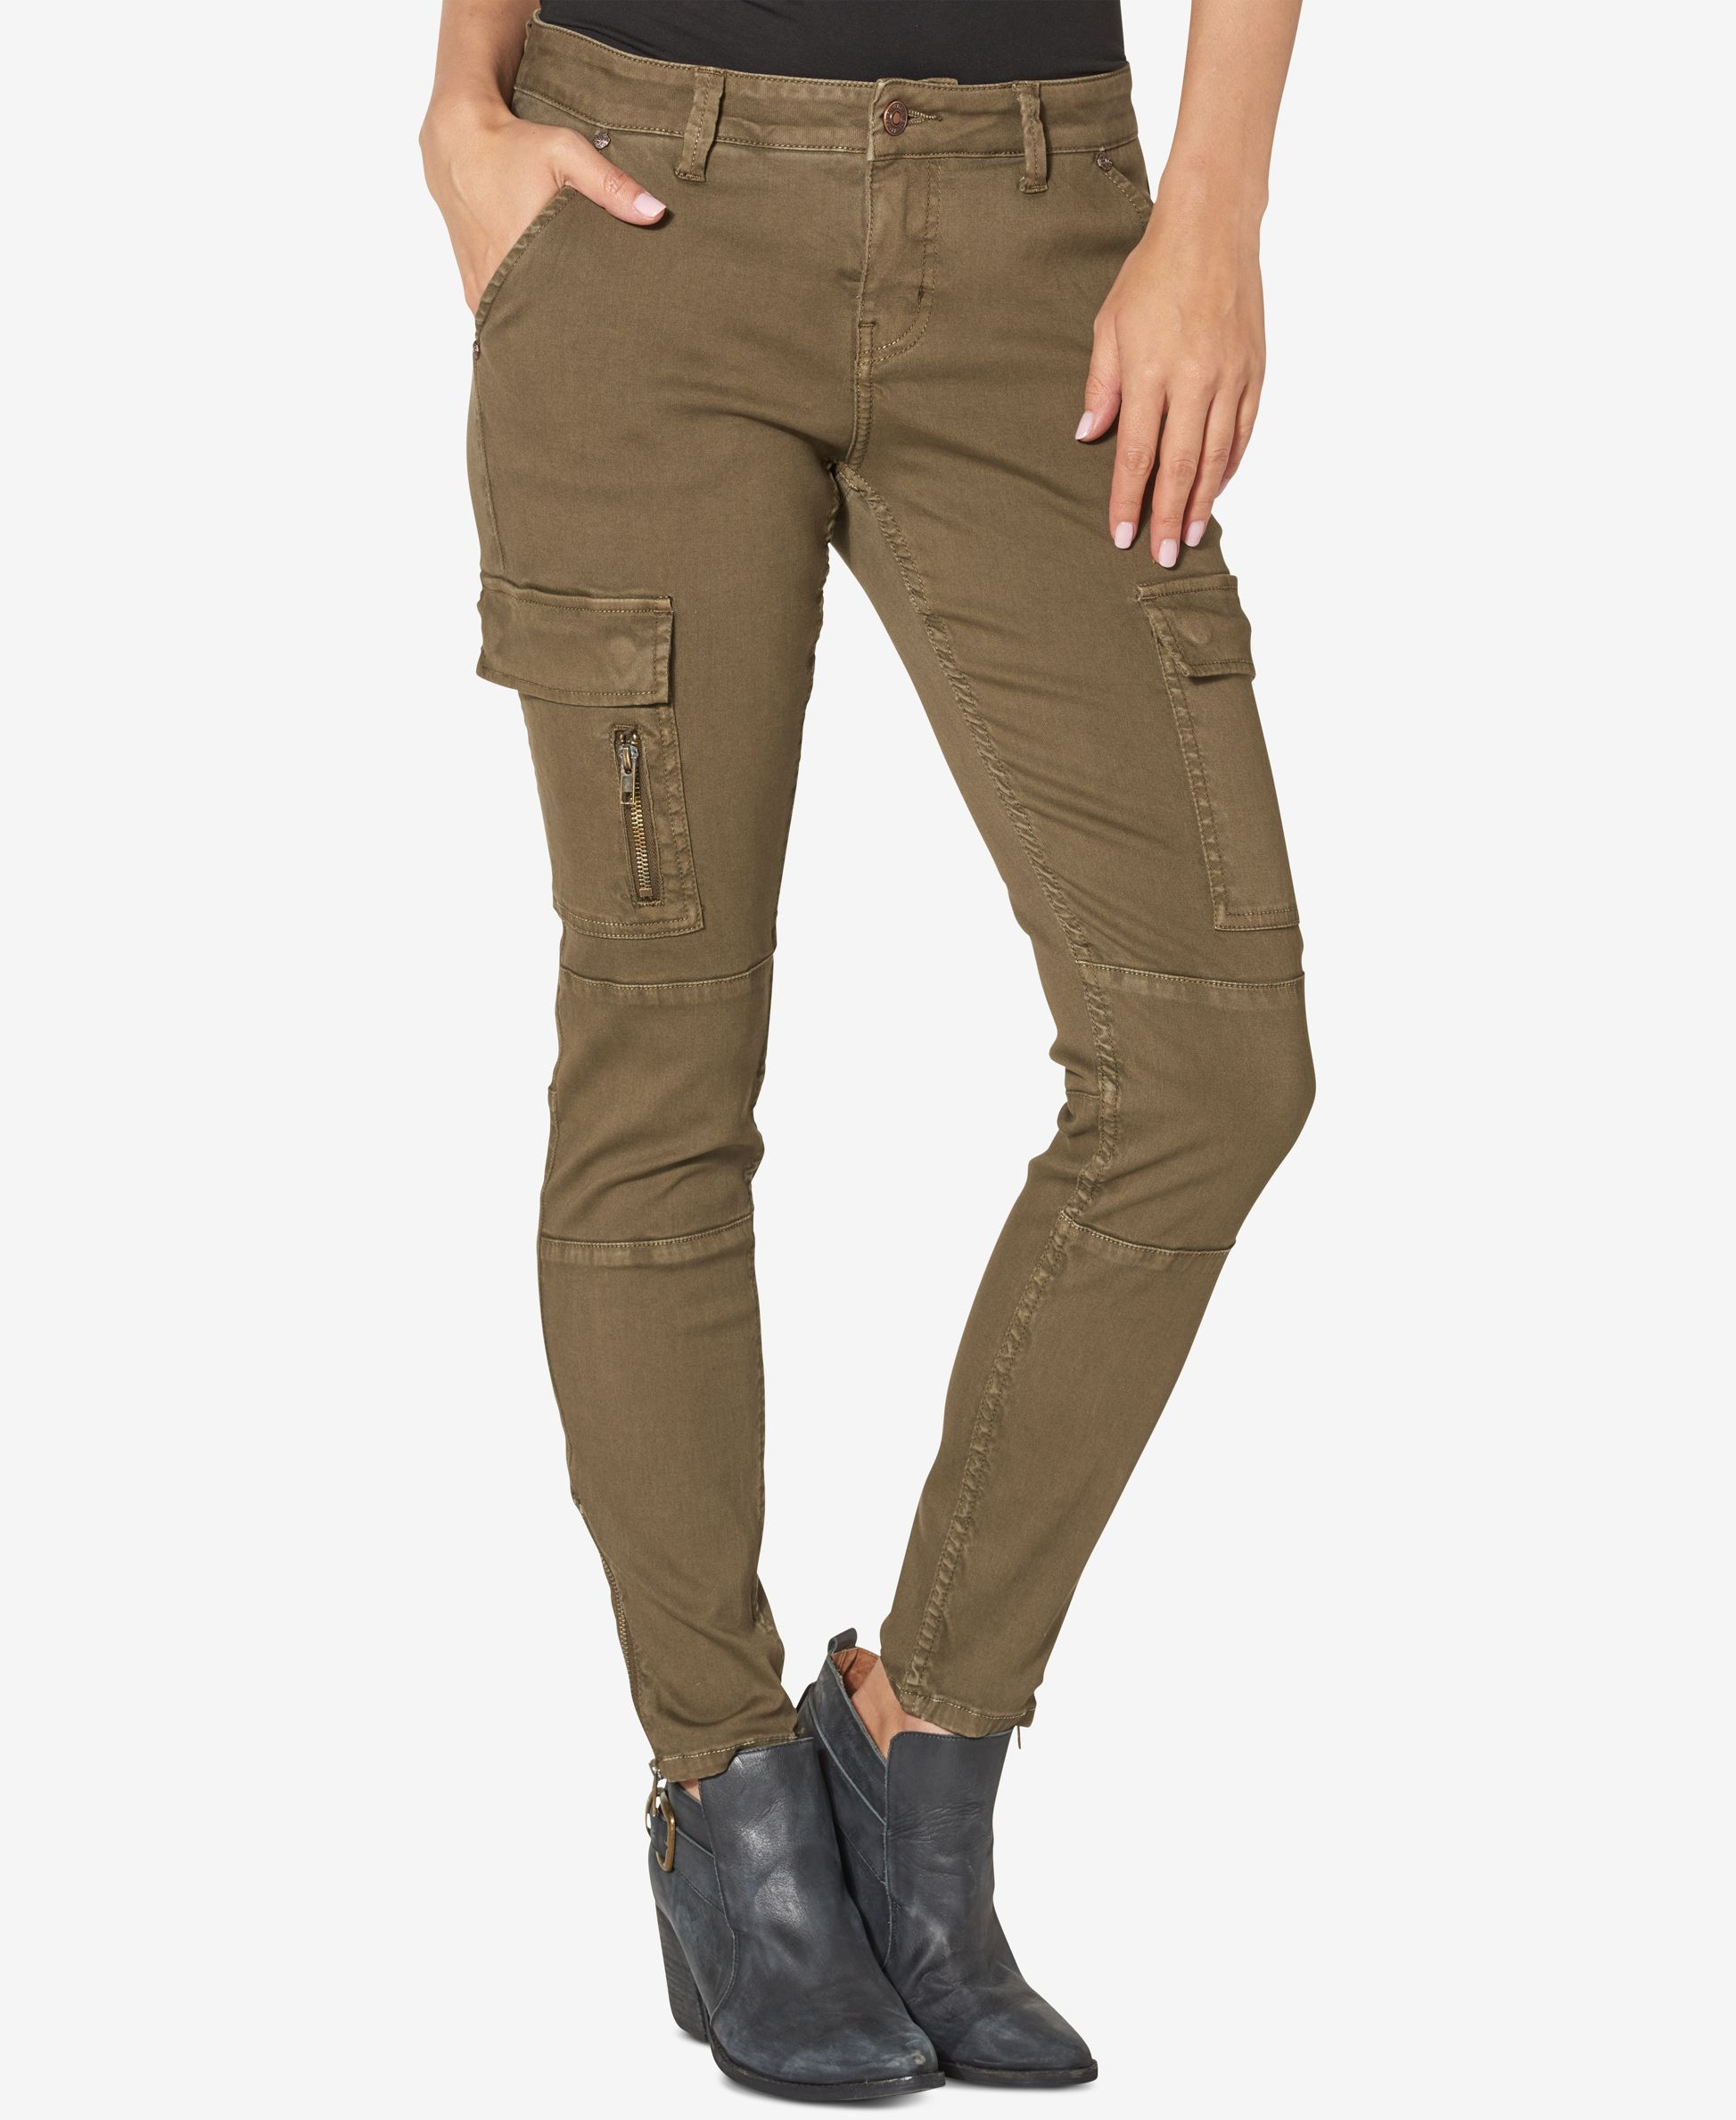 62f305b5 Silver Jeans Co. Cargo Black Wash Skinny Jeans | Products | Silver ...